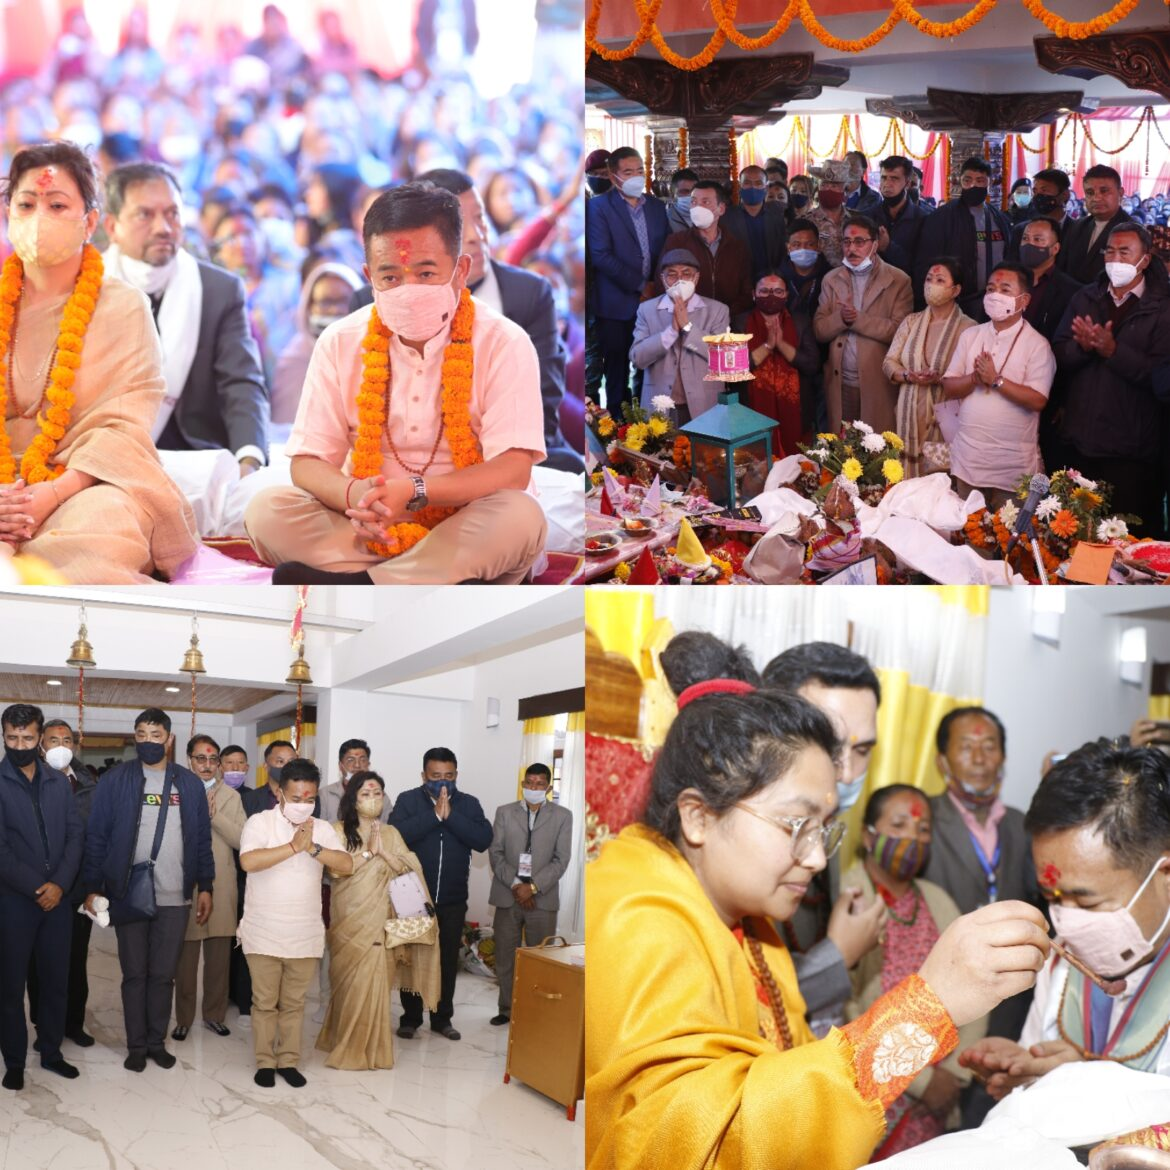 Wishing for the wellbeing of the state and its people, Hon'ble Chief Minister inaugurates a new temple on the occasion of MahaShivaratri